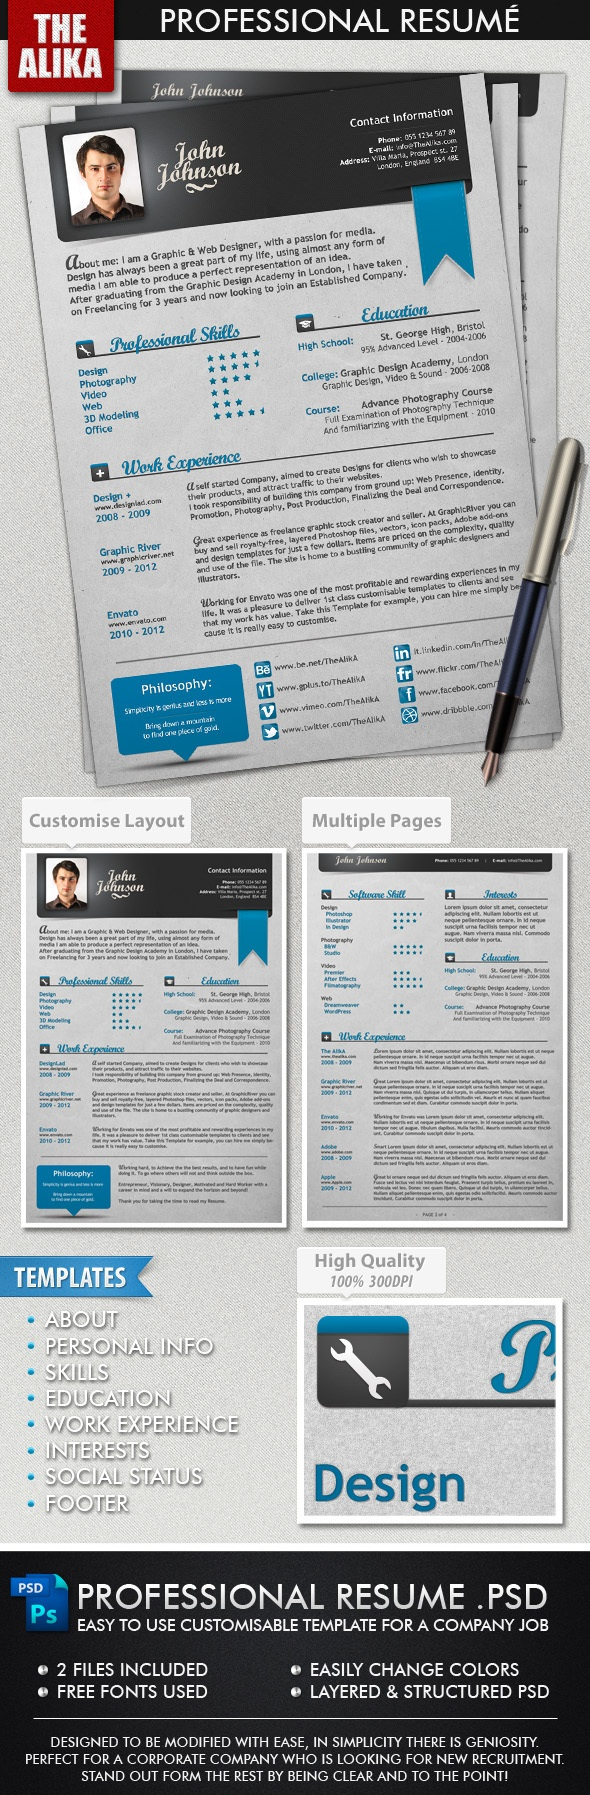 Professional Resume Resumes Stationery Easy To